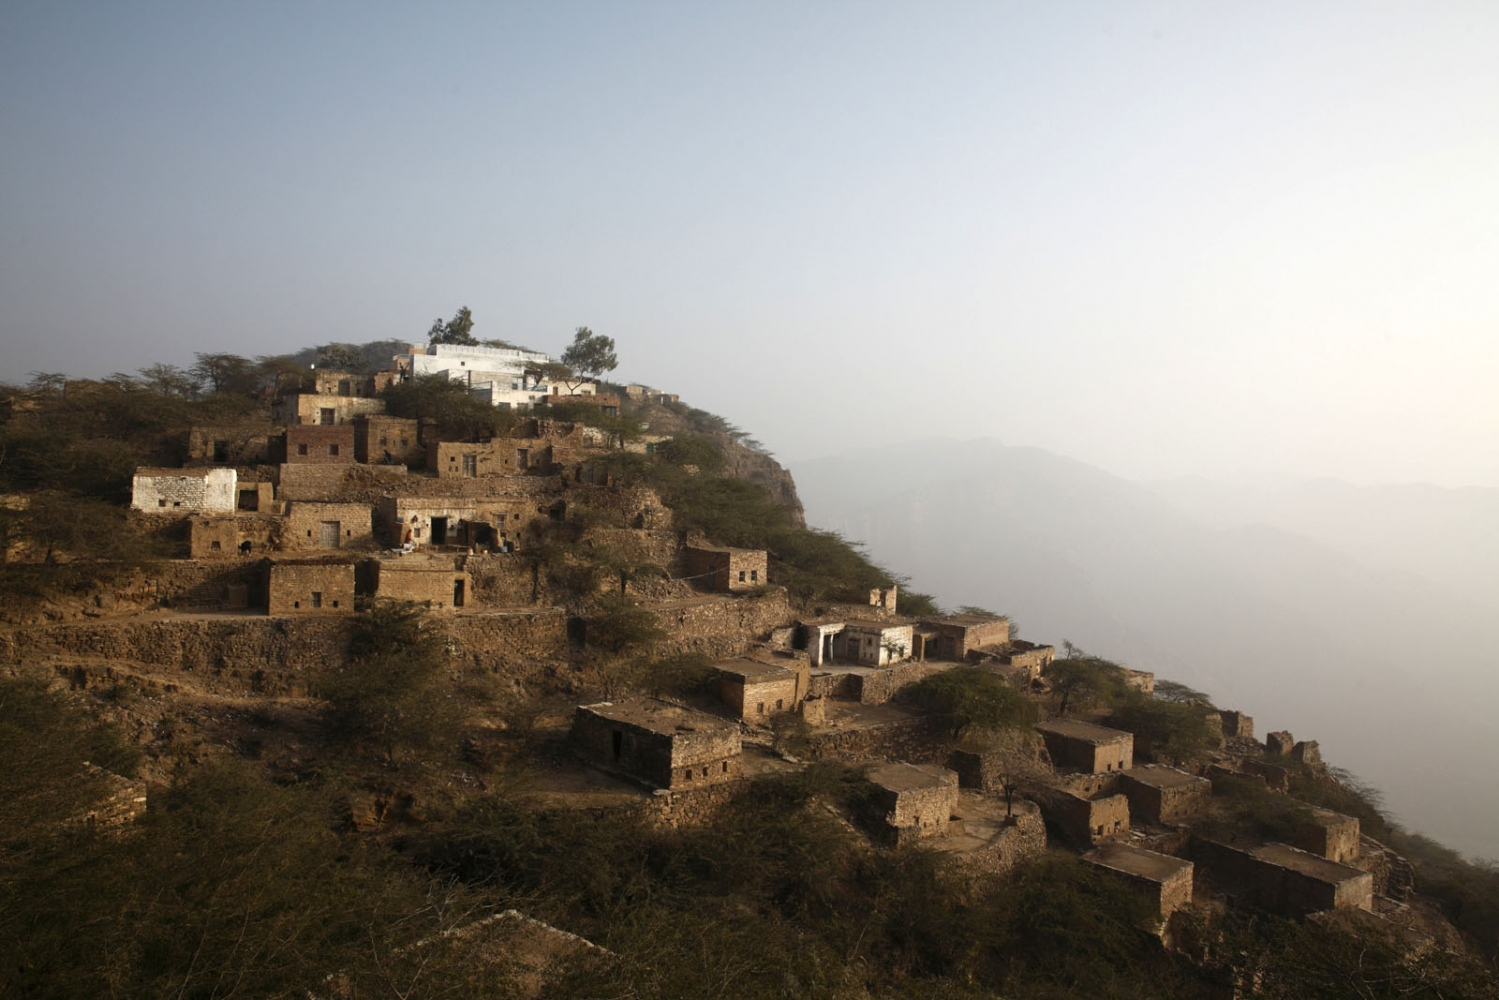 Perched on a mountain top, this small village is occupied entirely by salt miners who work in the Khewra salt mine below them. Punjab, Pakistan.